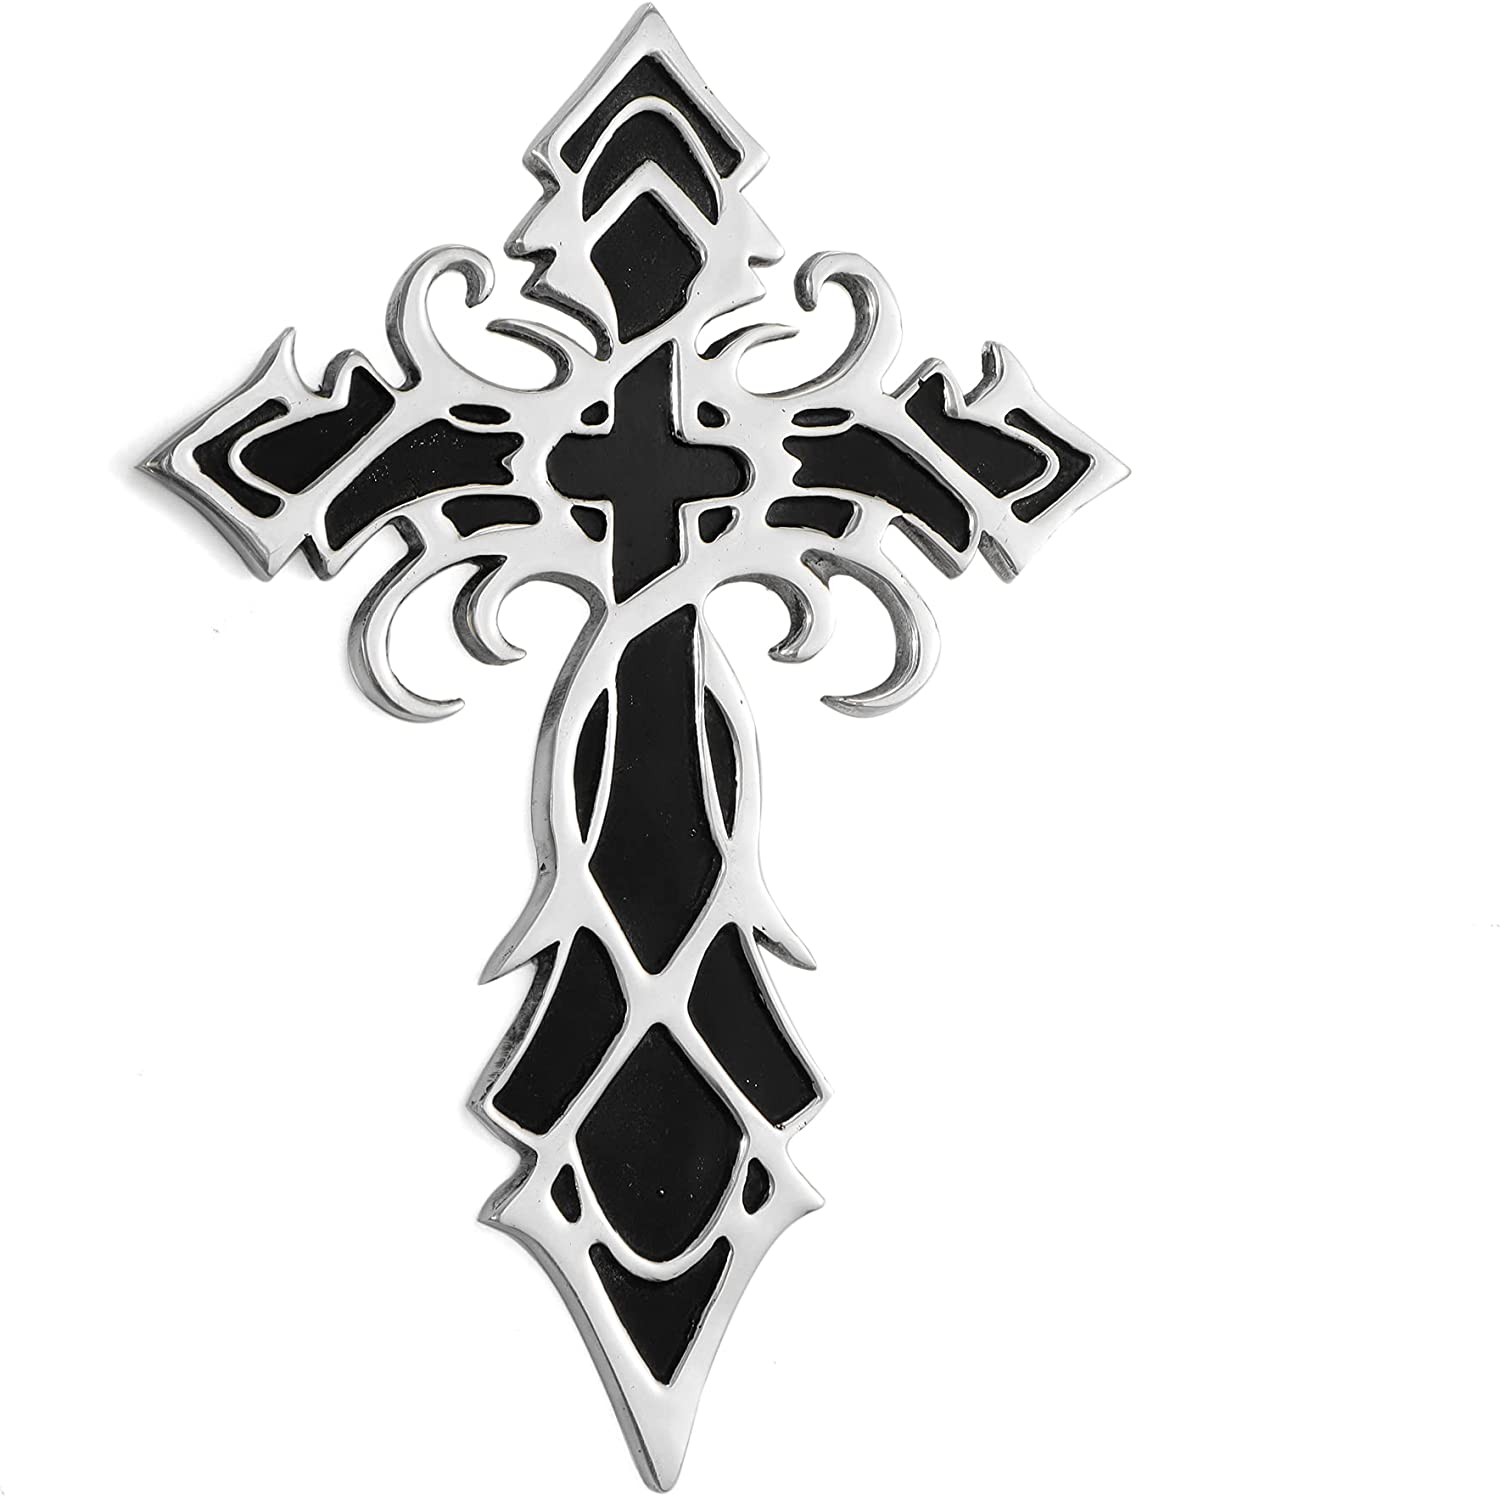 Decorative Large Tribal Design Cross Decorations For Wall - Hanging Cross Wall Decor, Best For Home, Office And As A Gift - Handcrafted, Finished in Silver & Black, 11.5